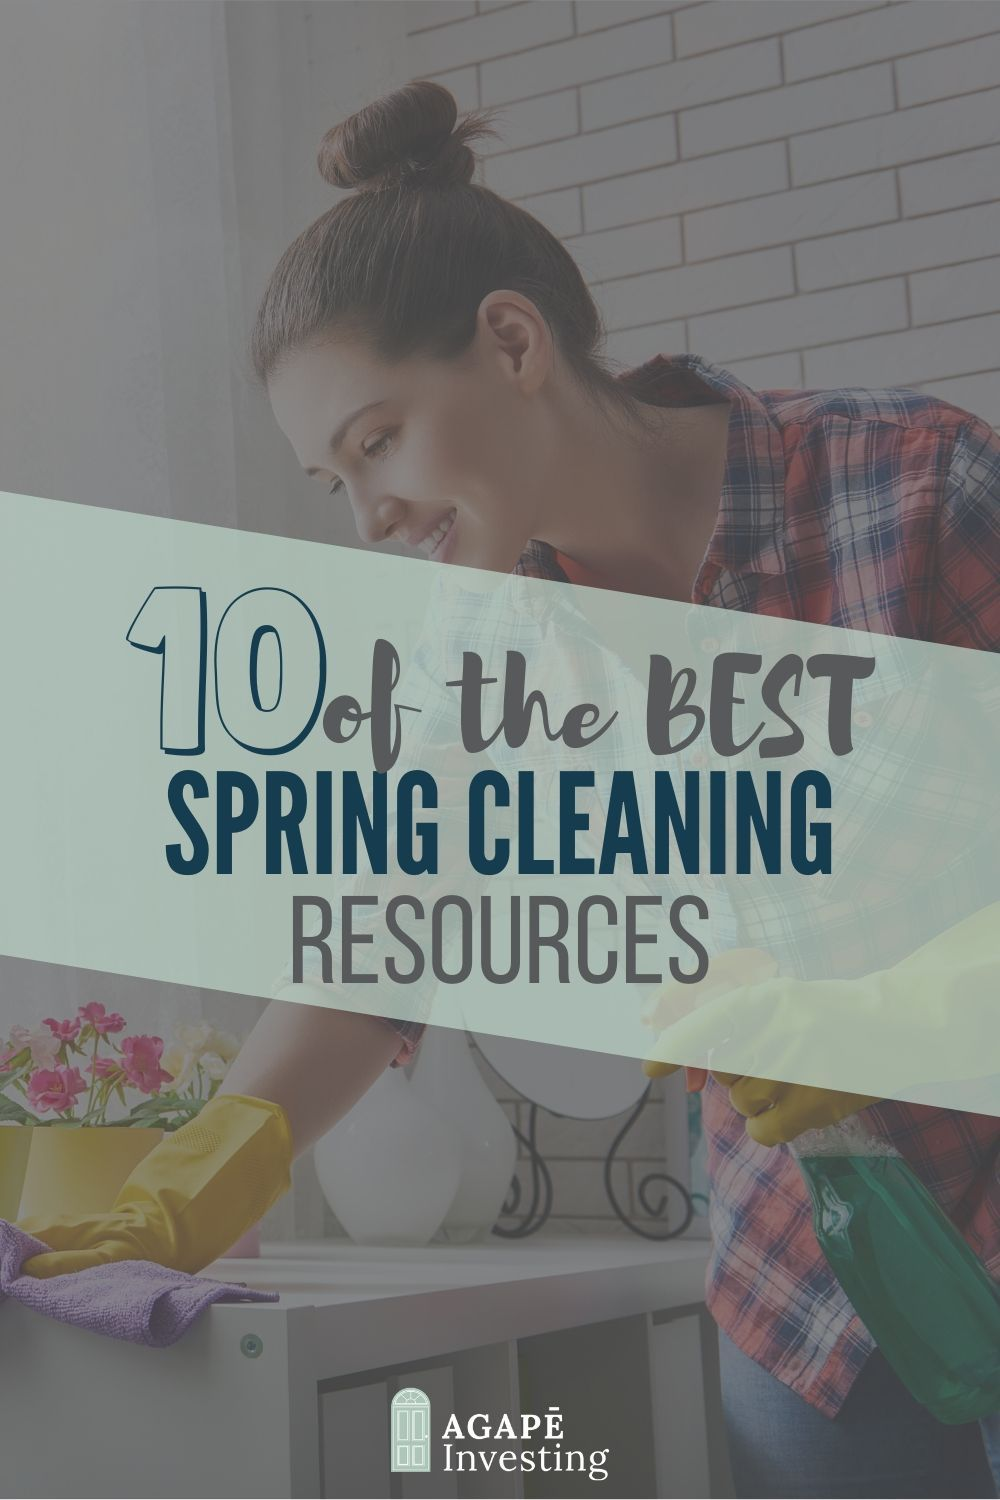 As we jump into springtime, many homeowners are thinking about spring cleaning. To save you time, we have put together this extensive list of 10 of the best spring cleaning resources. So get ready to roll up your sleeves and get to work! #springcleaning #housecleaning #springclean #springcleaningresources